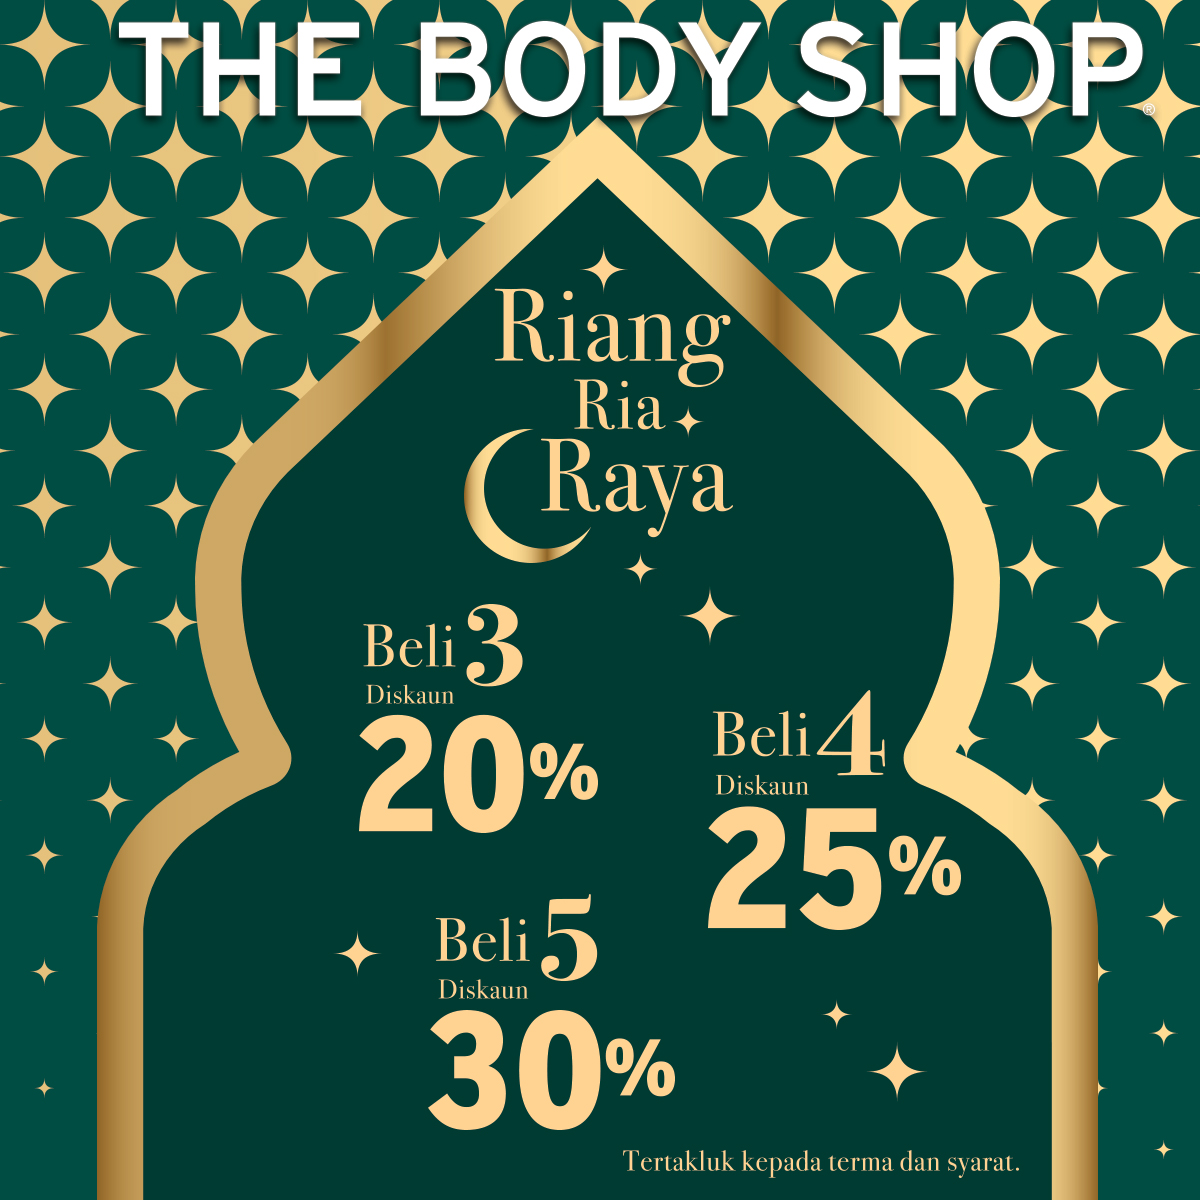 The Body Shop Hari Raya Promotion